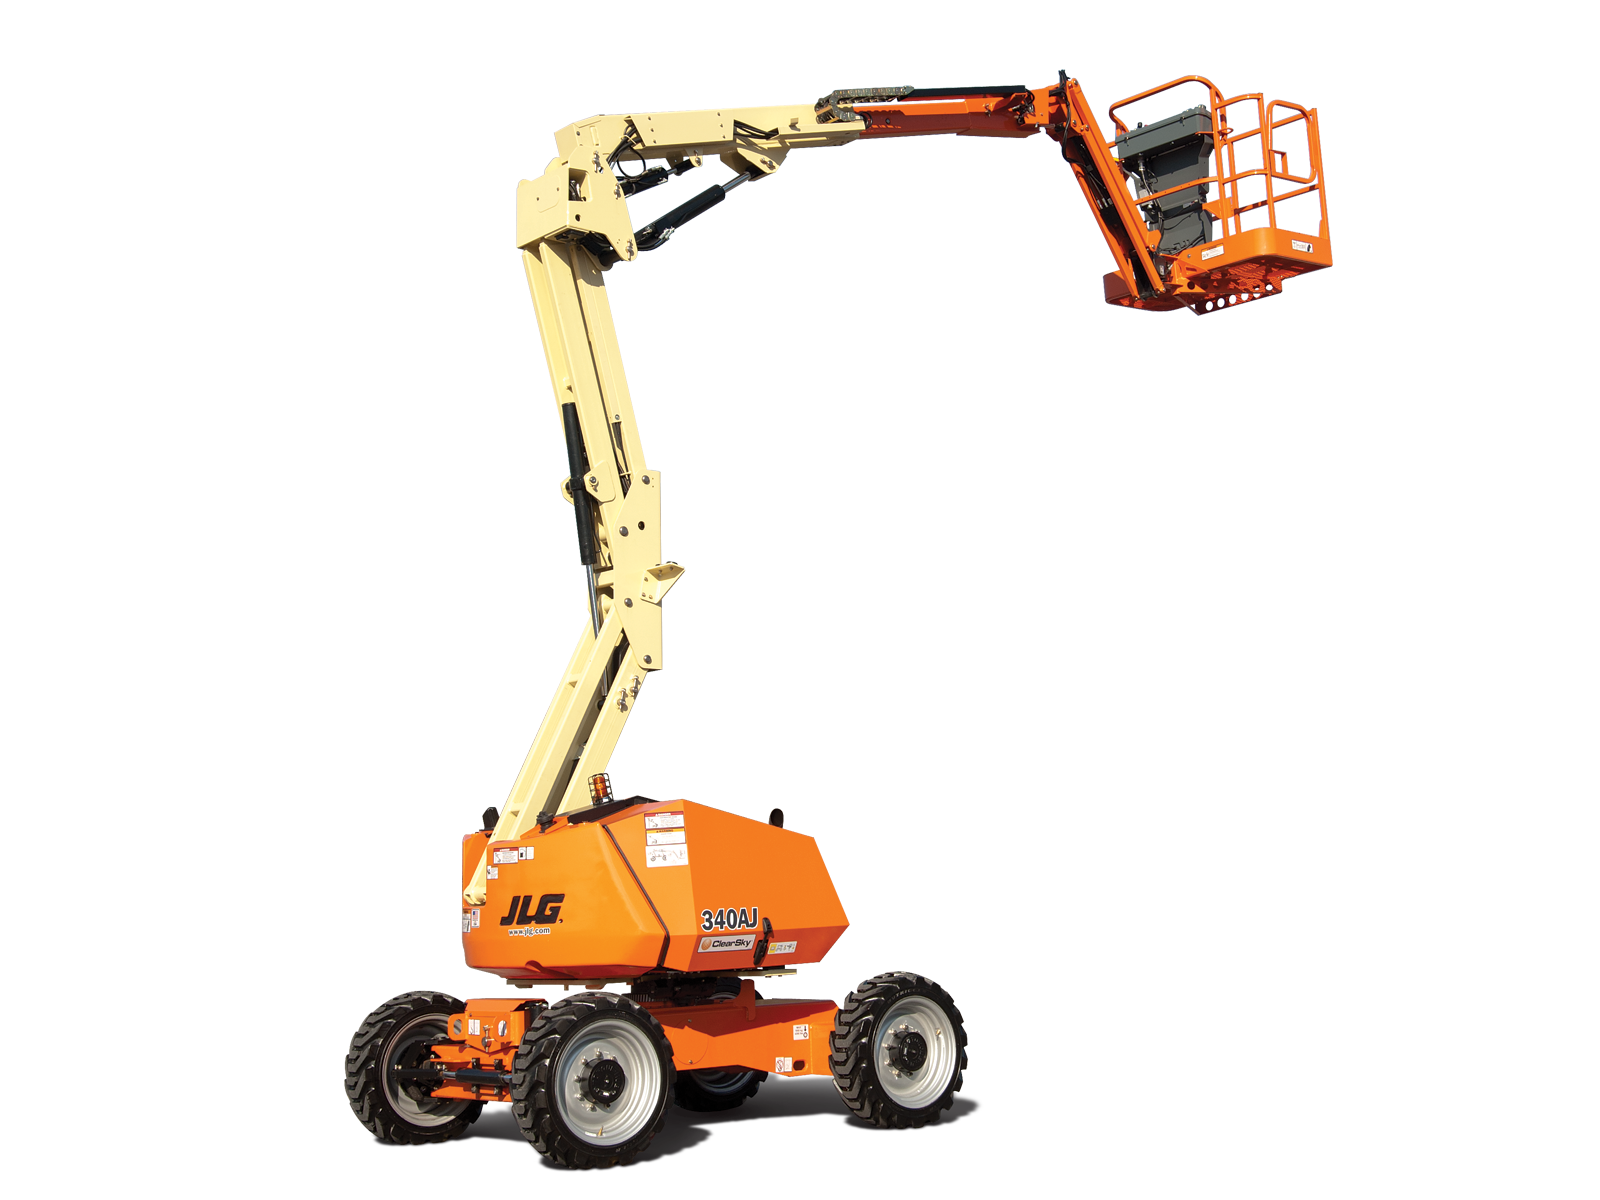 JLG Towable Boom Lifts